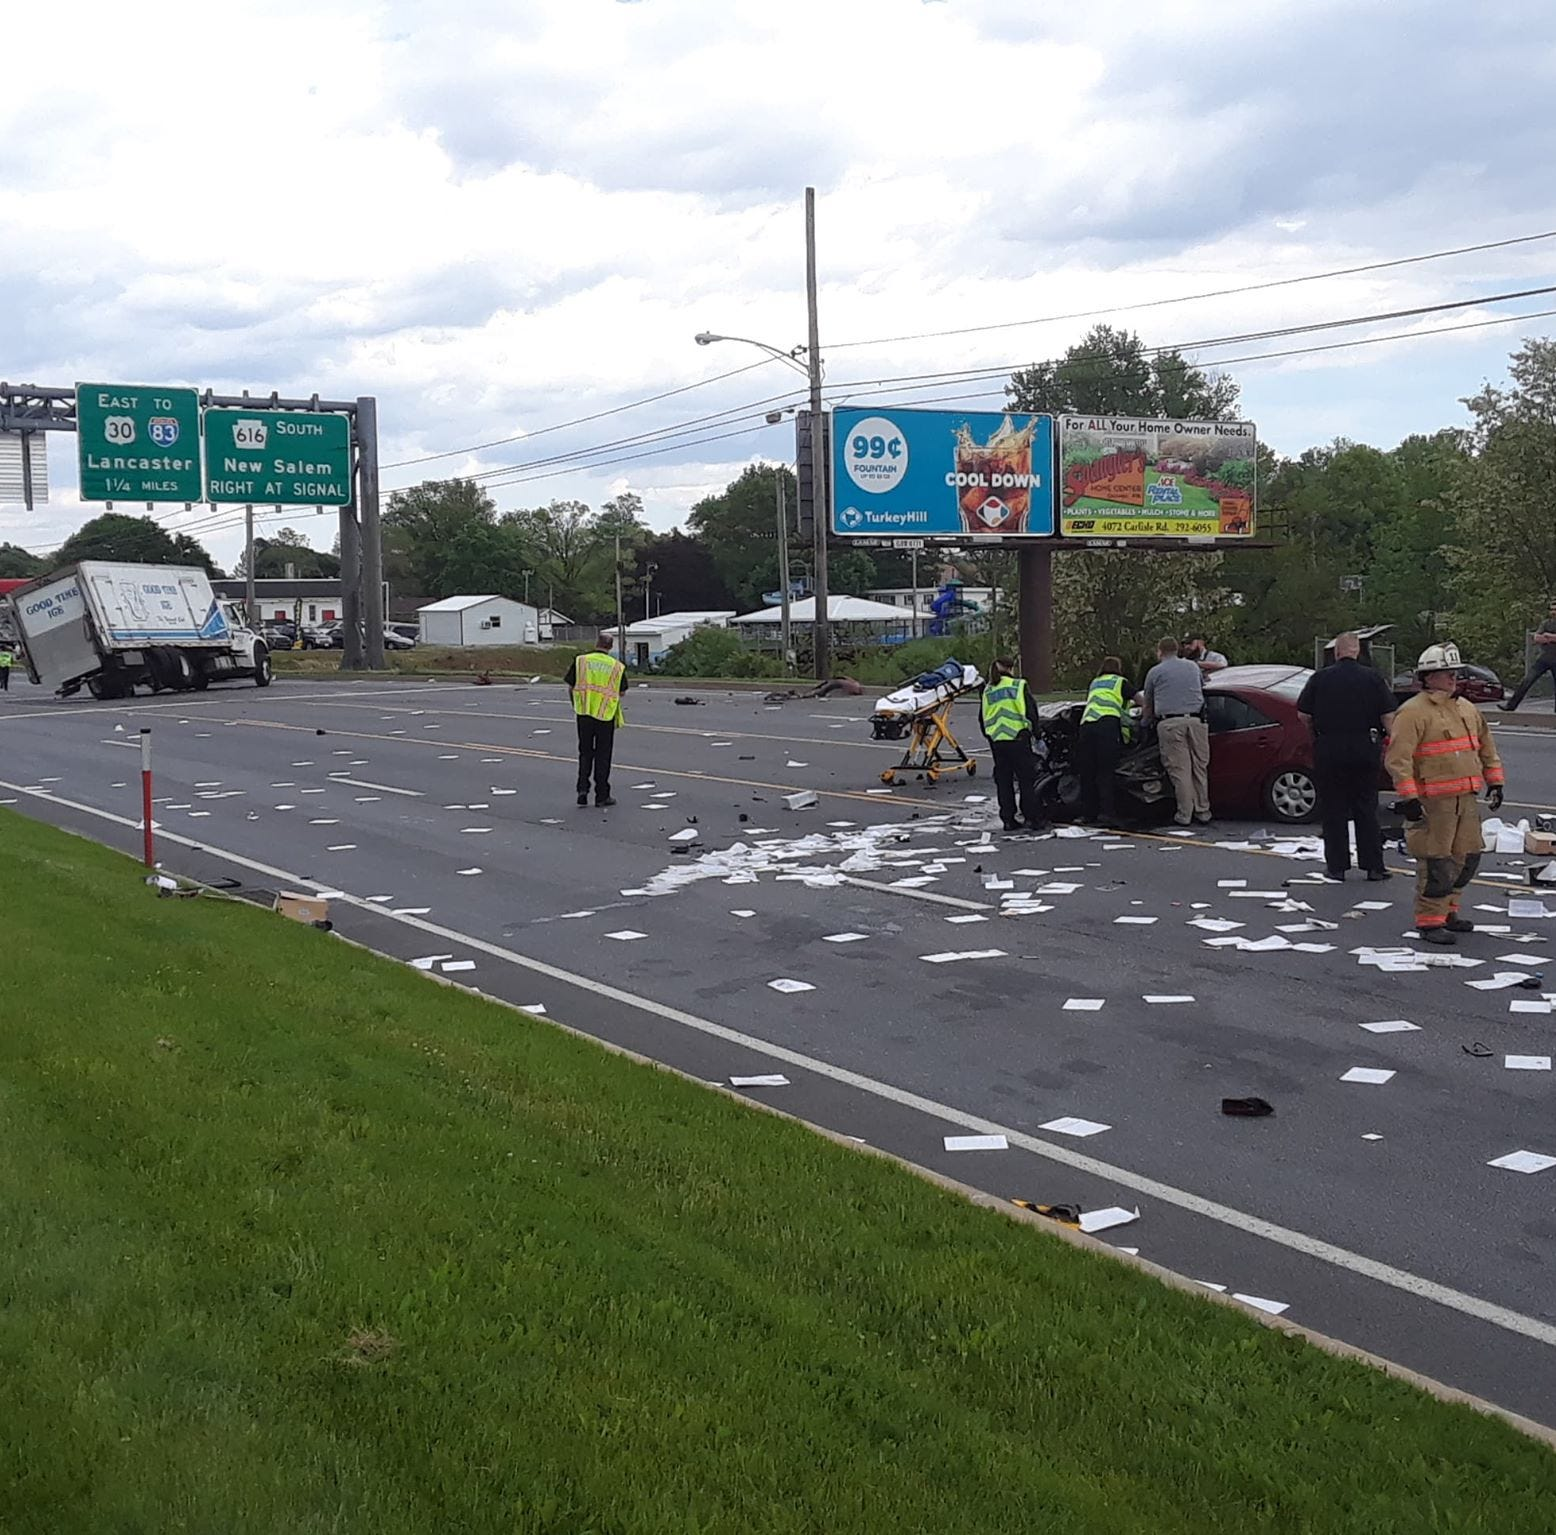 UPDATE: Route 30 closed after ice truck, car crash in West Manchester